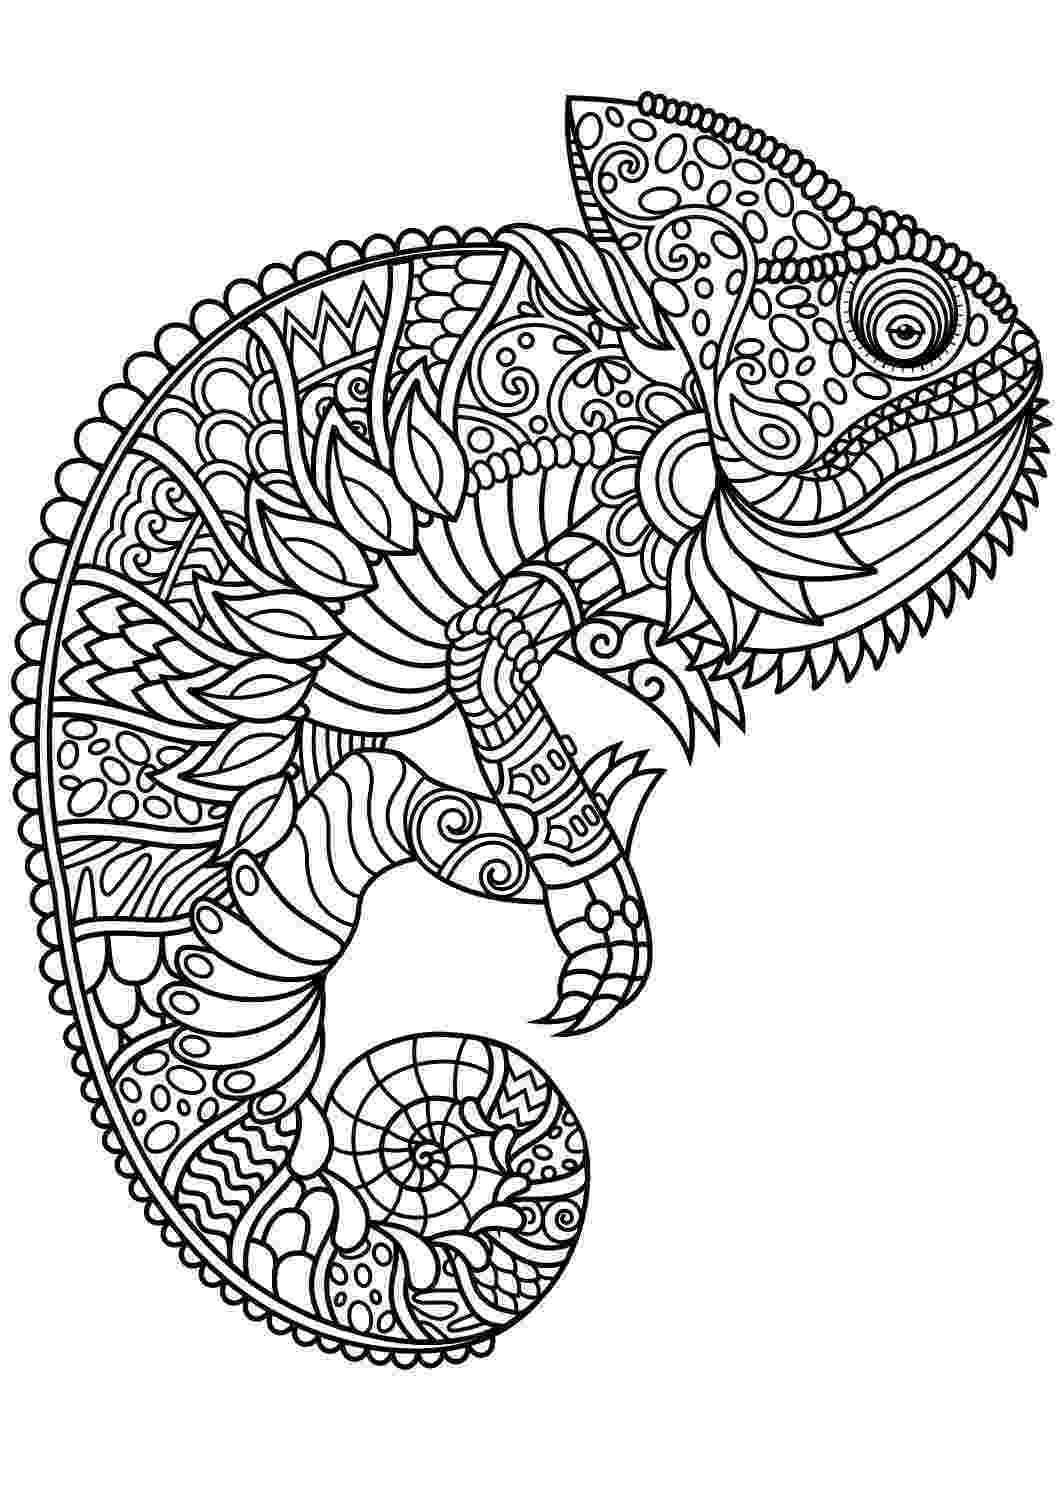 coloring pages of animals kids corner veterinary hospital wexford wexford vets animals of coloring pages